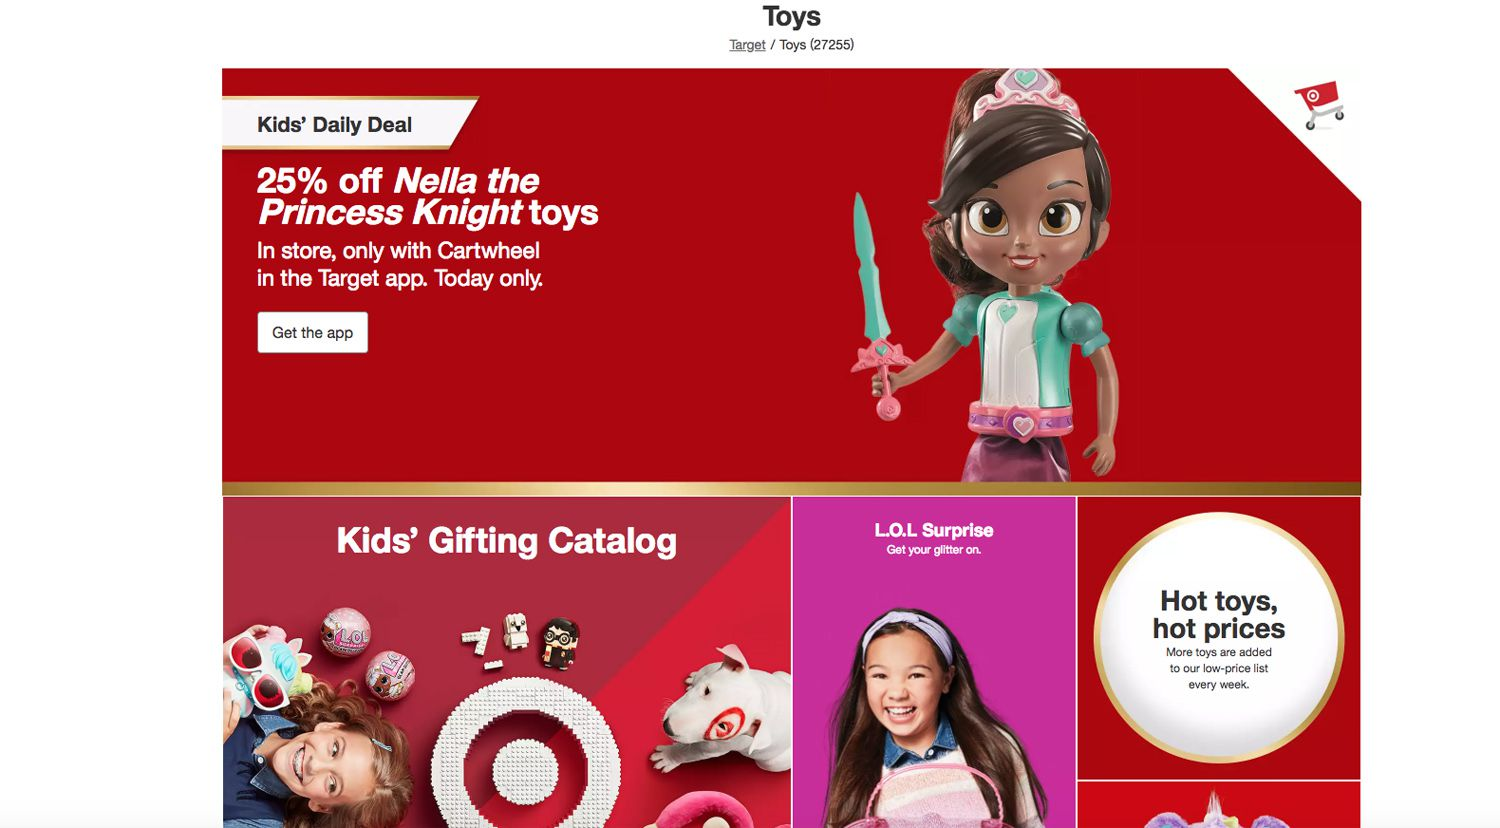 Best Online Shopping Sites for Toys With Free Shipping